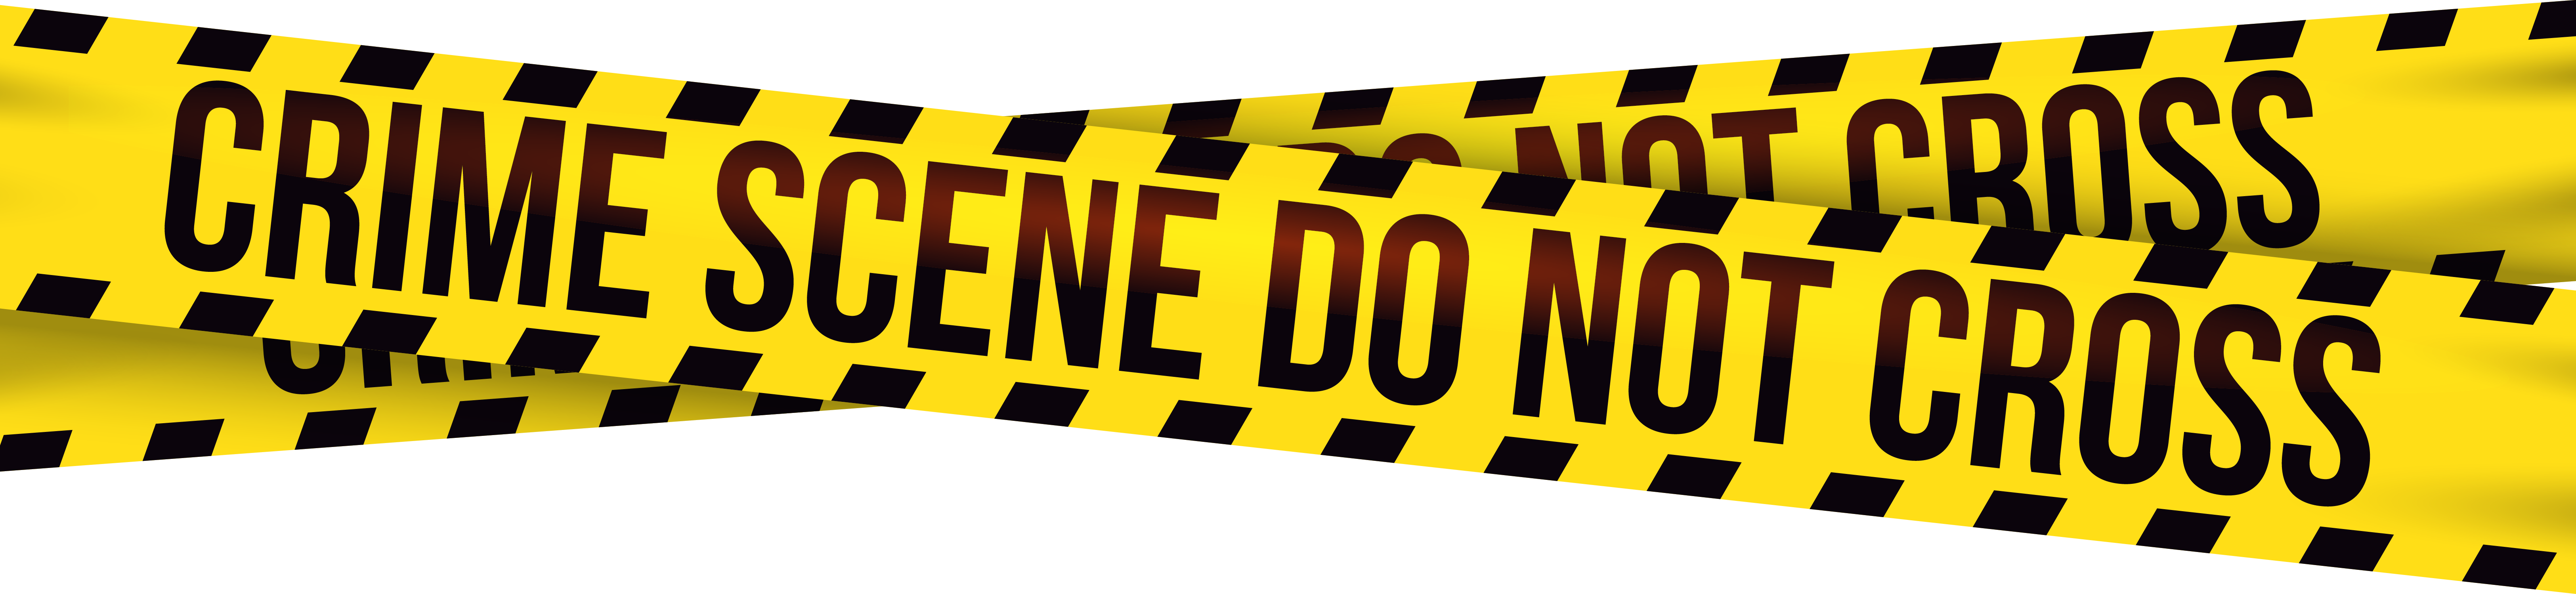 Police tape png. Images free download